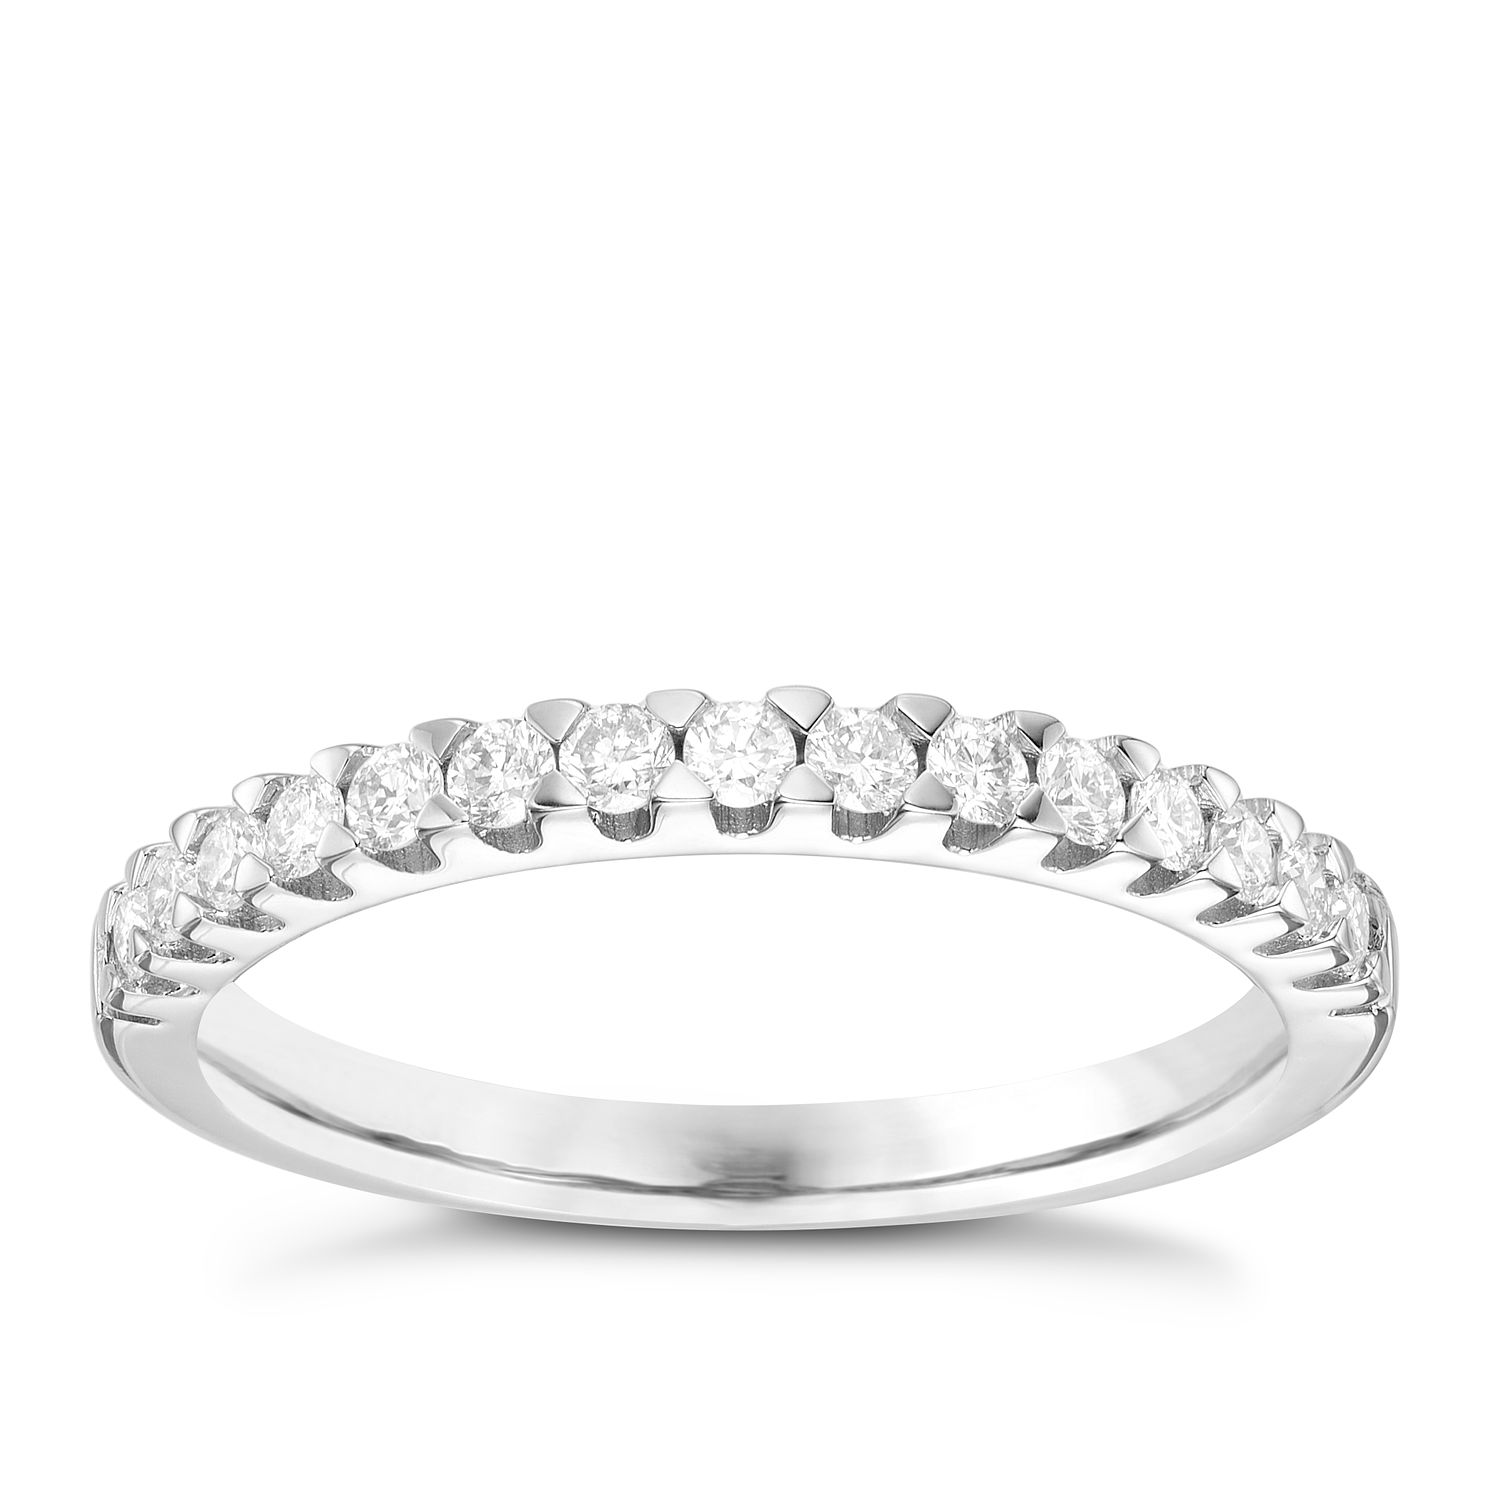 18ct White Gold 0.30 Carat Claw Set Diamond Band - Product number 6090087